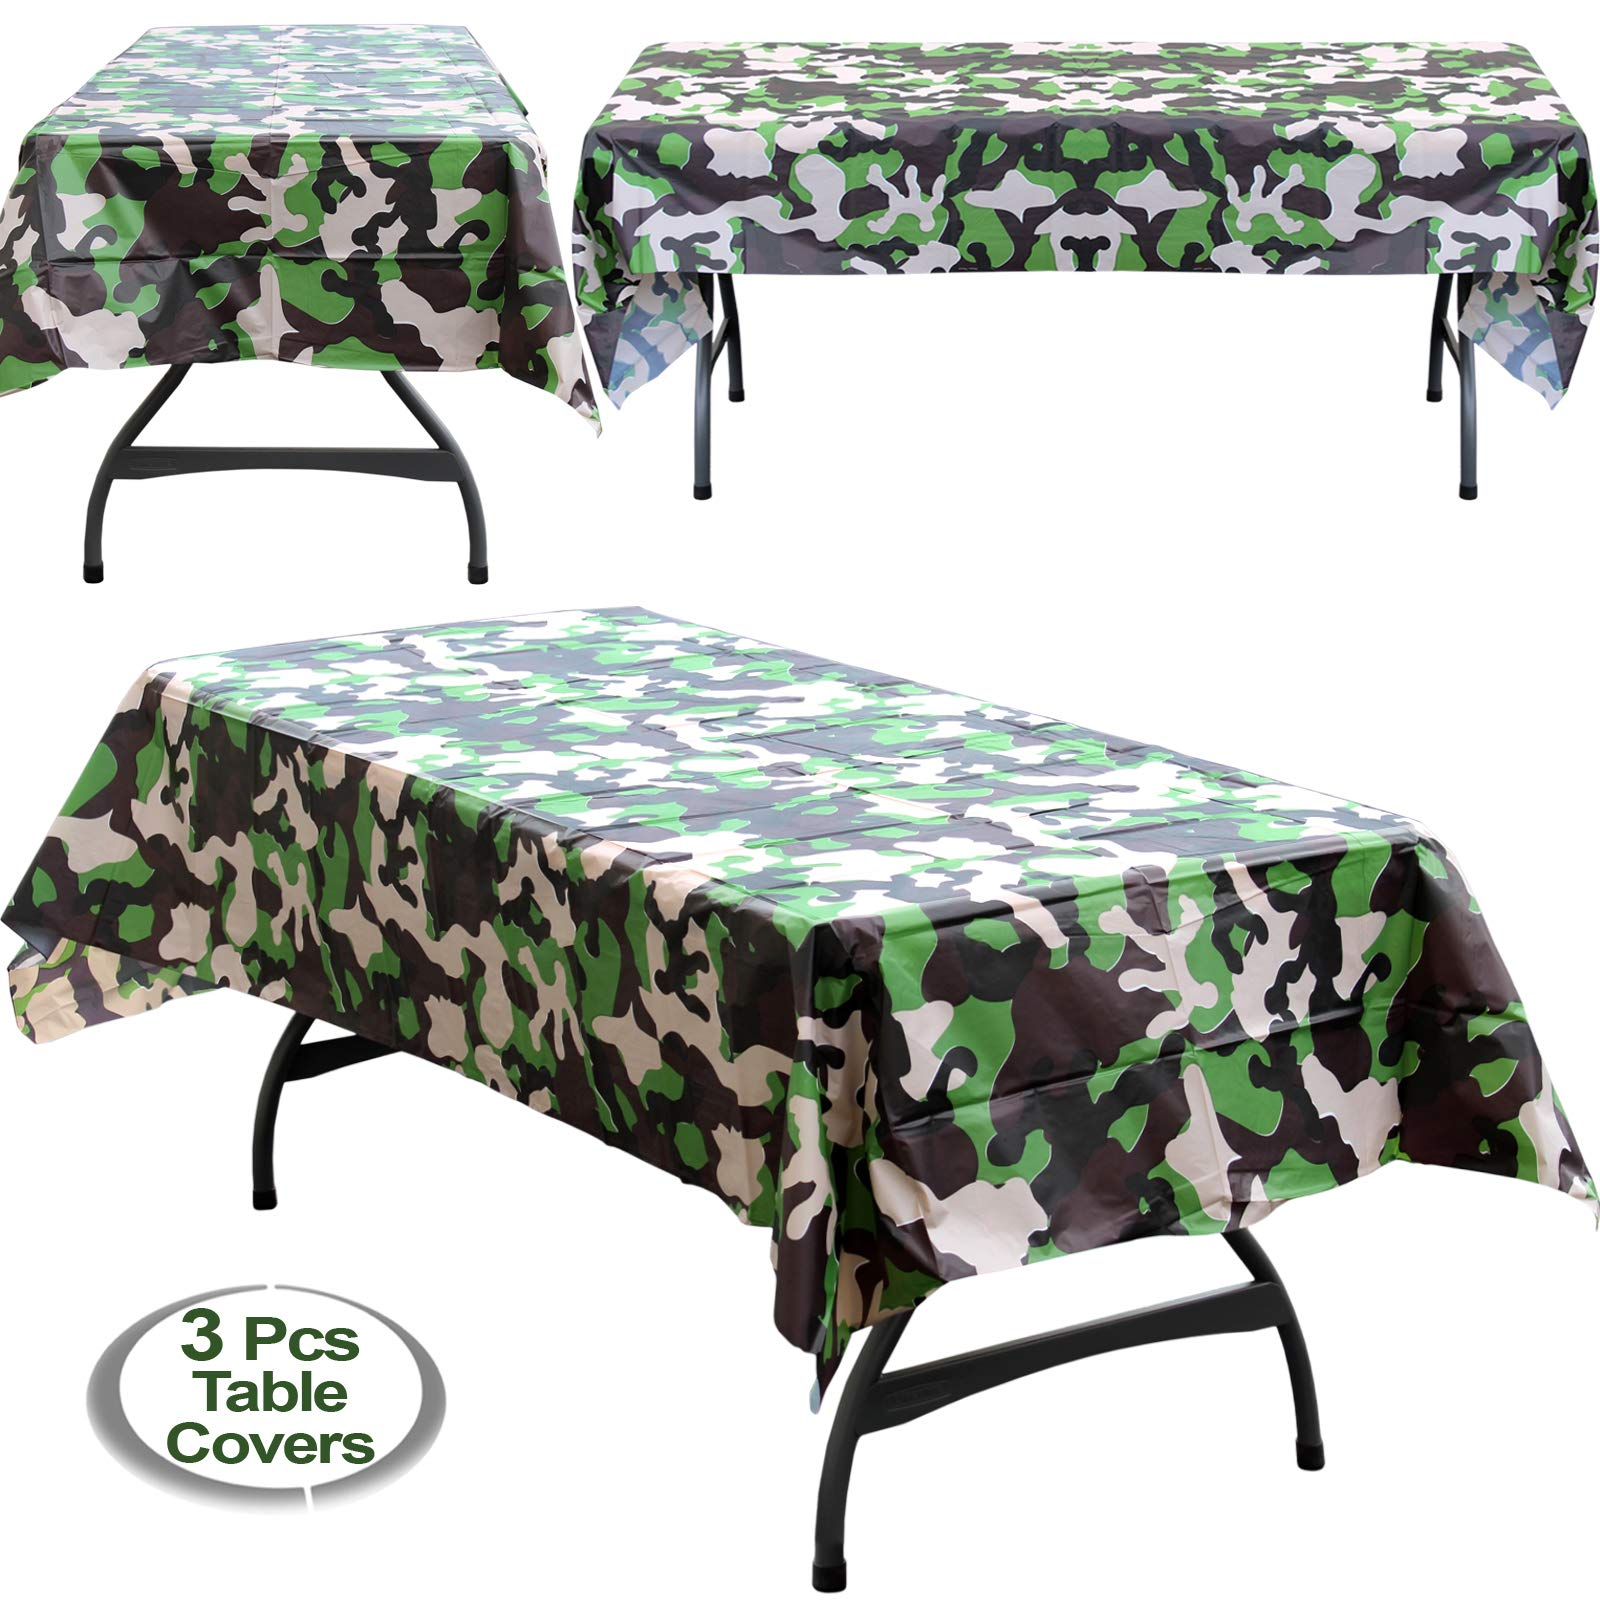 Anapoliz Army Plastic Tablecloth 3 Pcs Pack 54 Inch Wide X 108 Long Rectangular Camouflage Table Cover Military Party Decorations Camo Buy